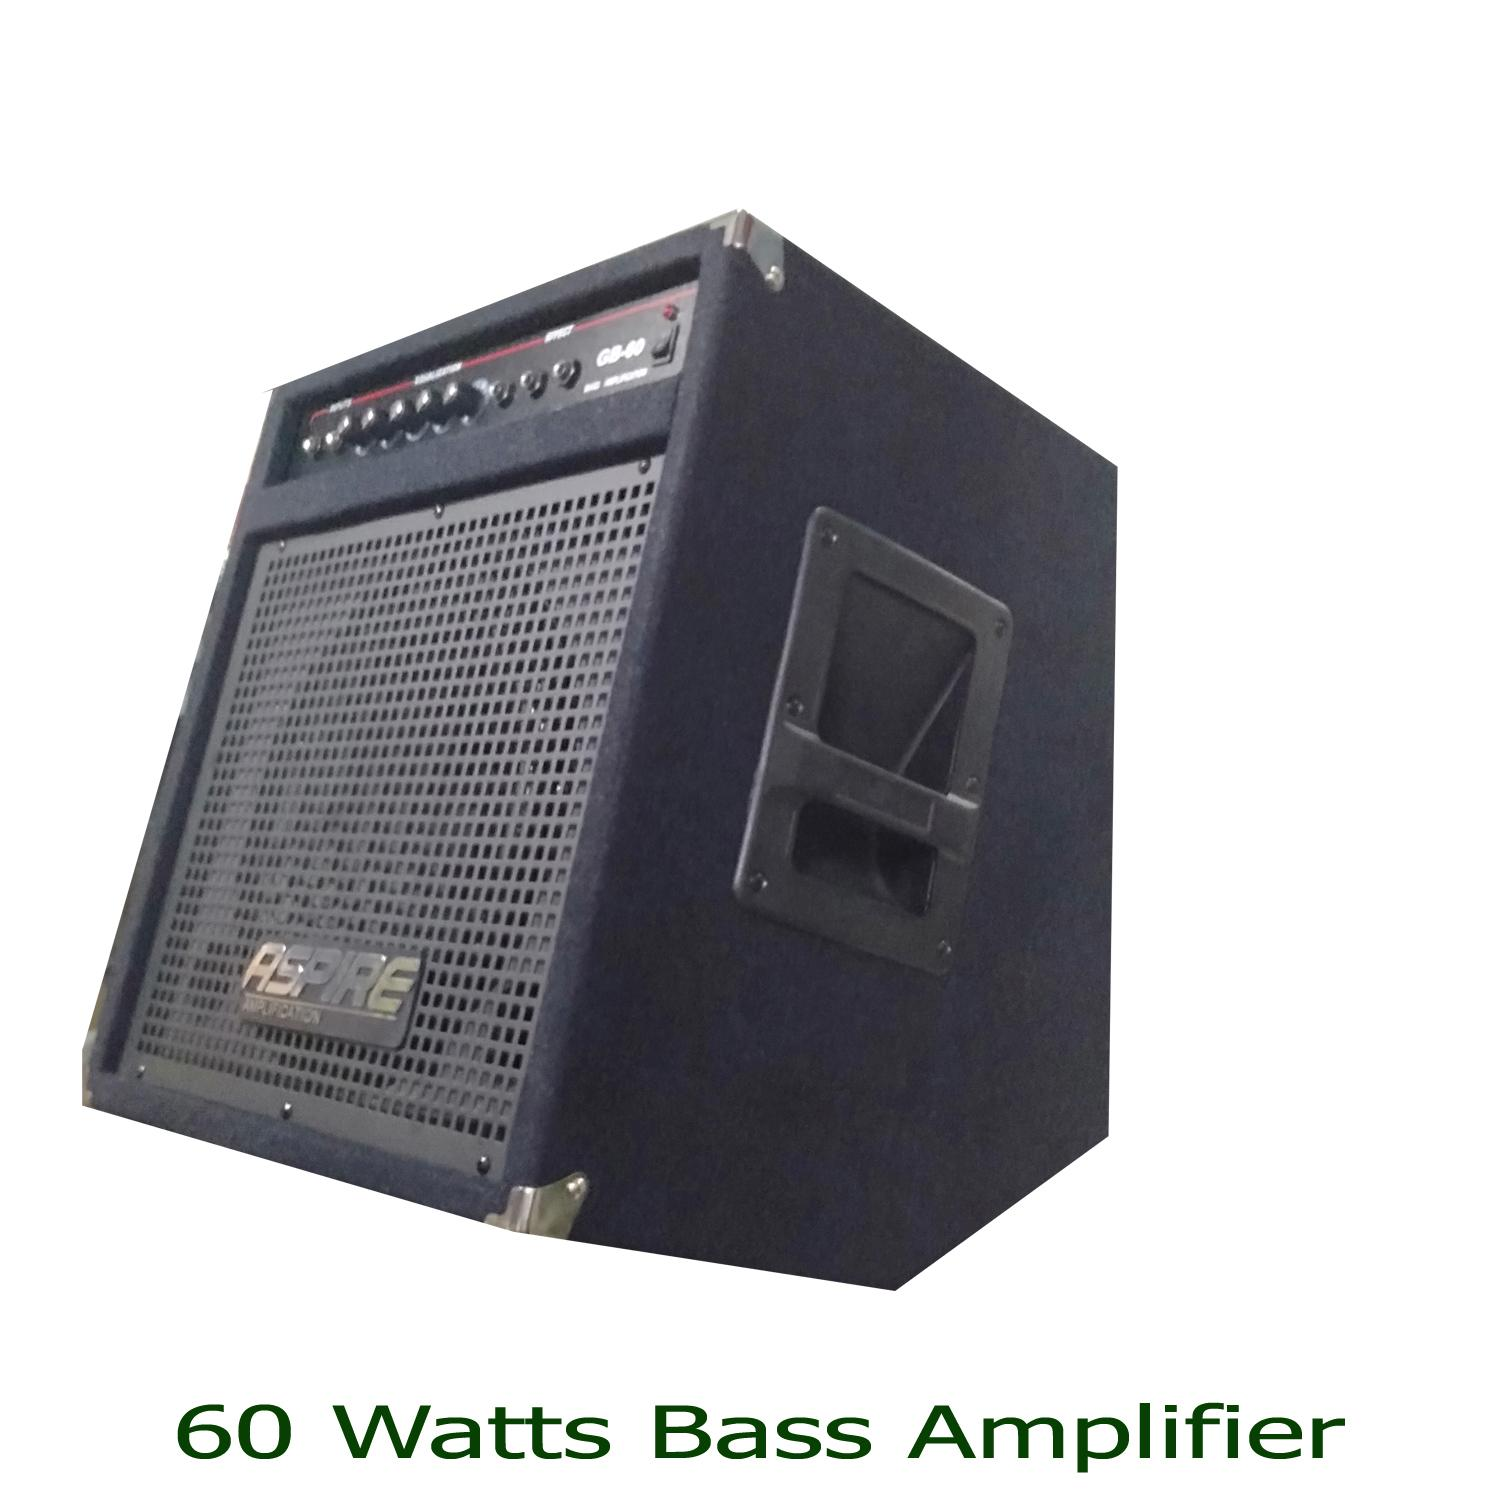 Guitar Amp For Sale Electric Best Seller Prices 70 Watt Amplifier Circuit Preamplifier Tone Control Bass Aspire 60watts Gb 60 Tilting Alternative Brand To Global